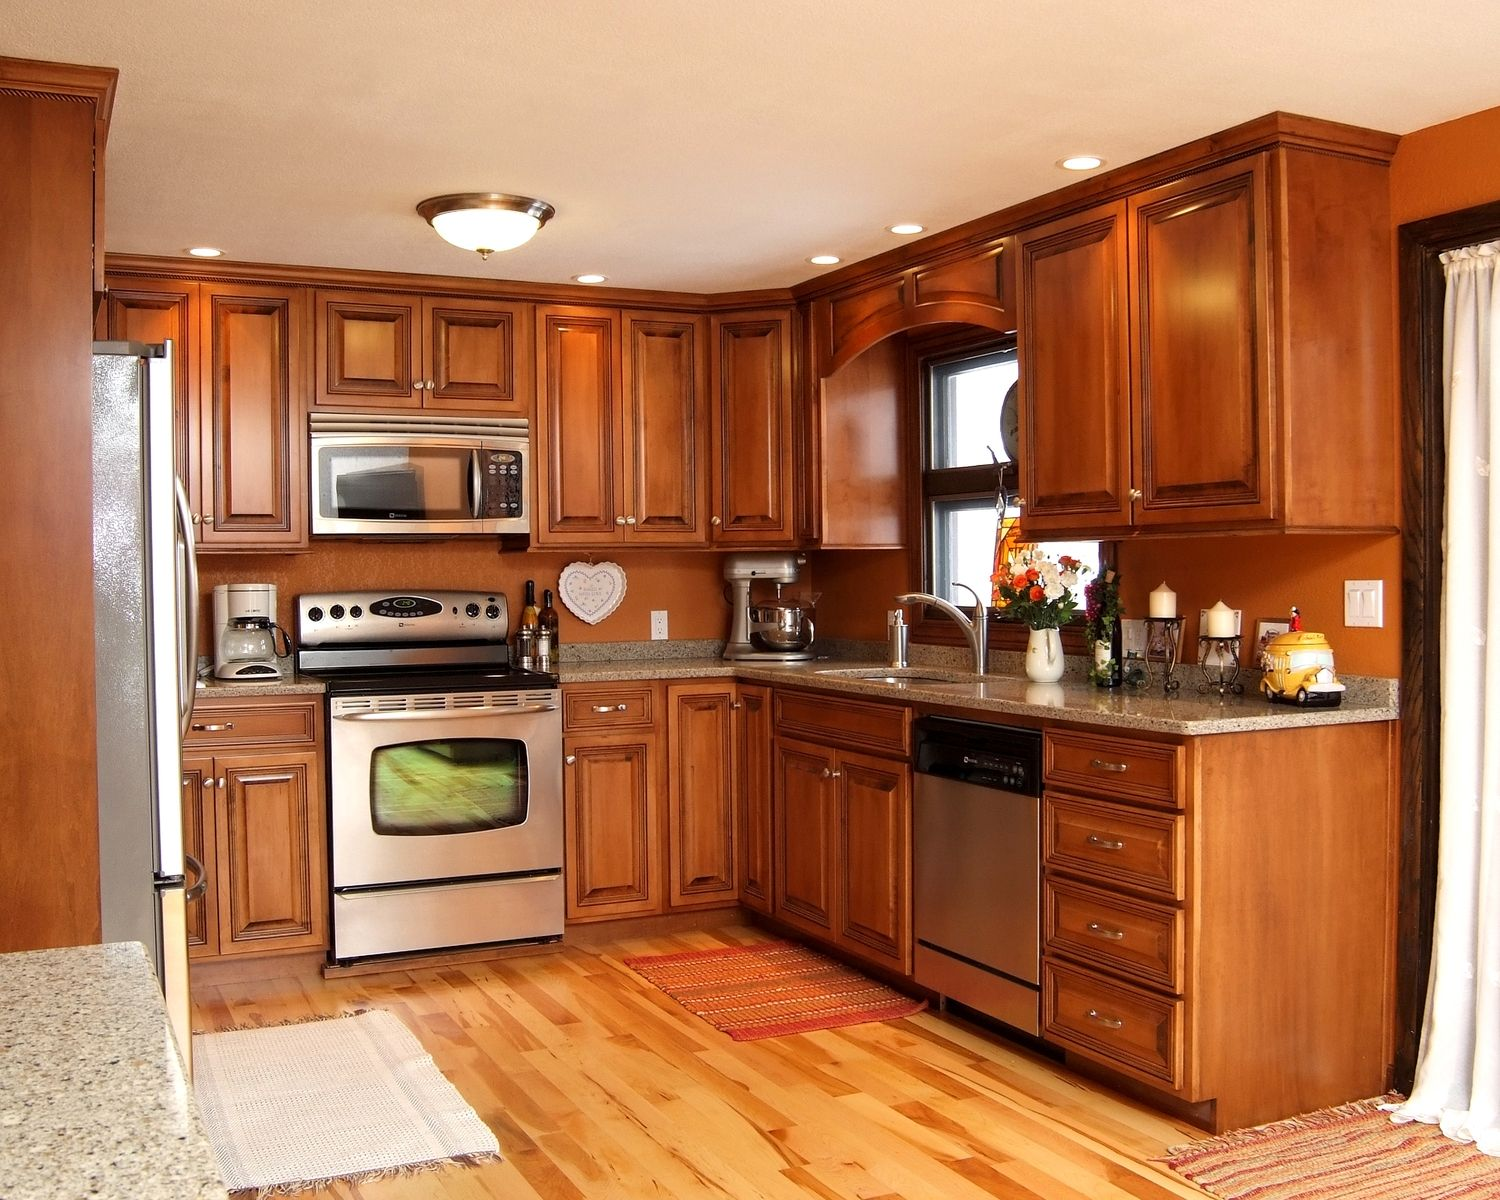 Best Maple Glazed Kitchen With Quartz Countertops With Images 400 x 300